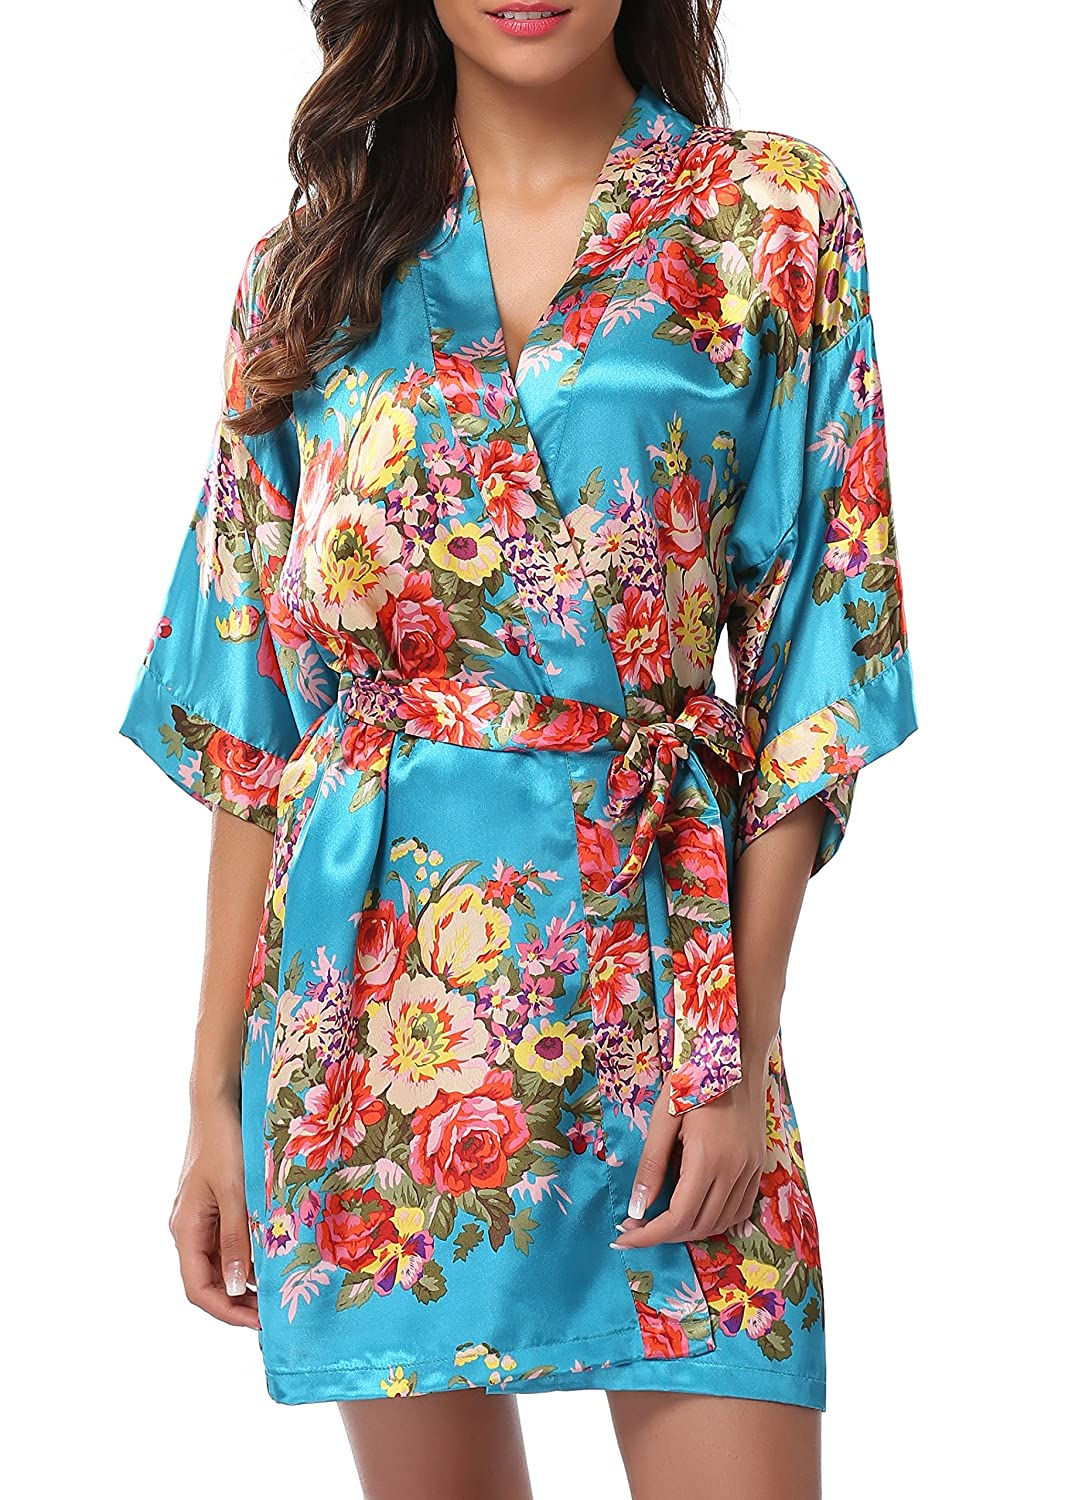 bluee 1stmall Floral Satin Kimono Short Style Bridesmaids Robes for Women